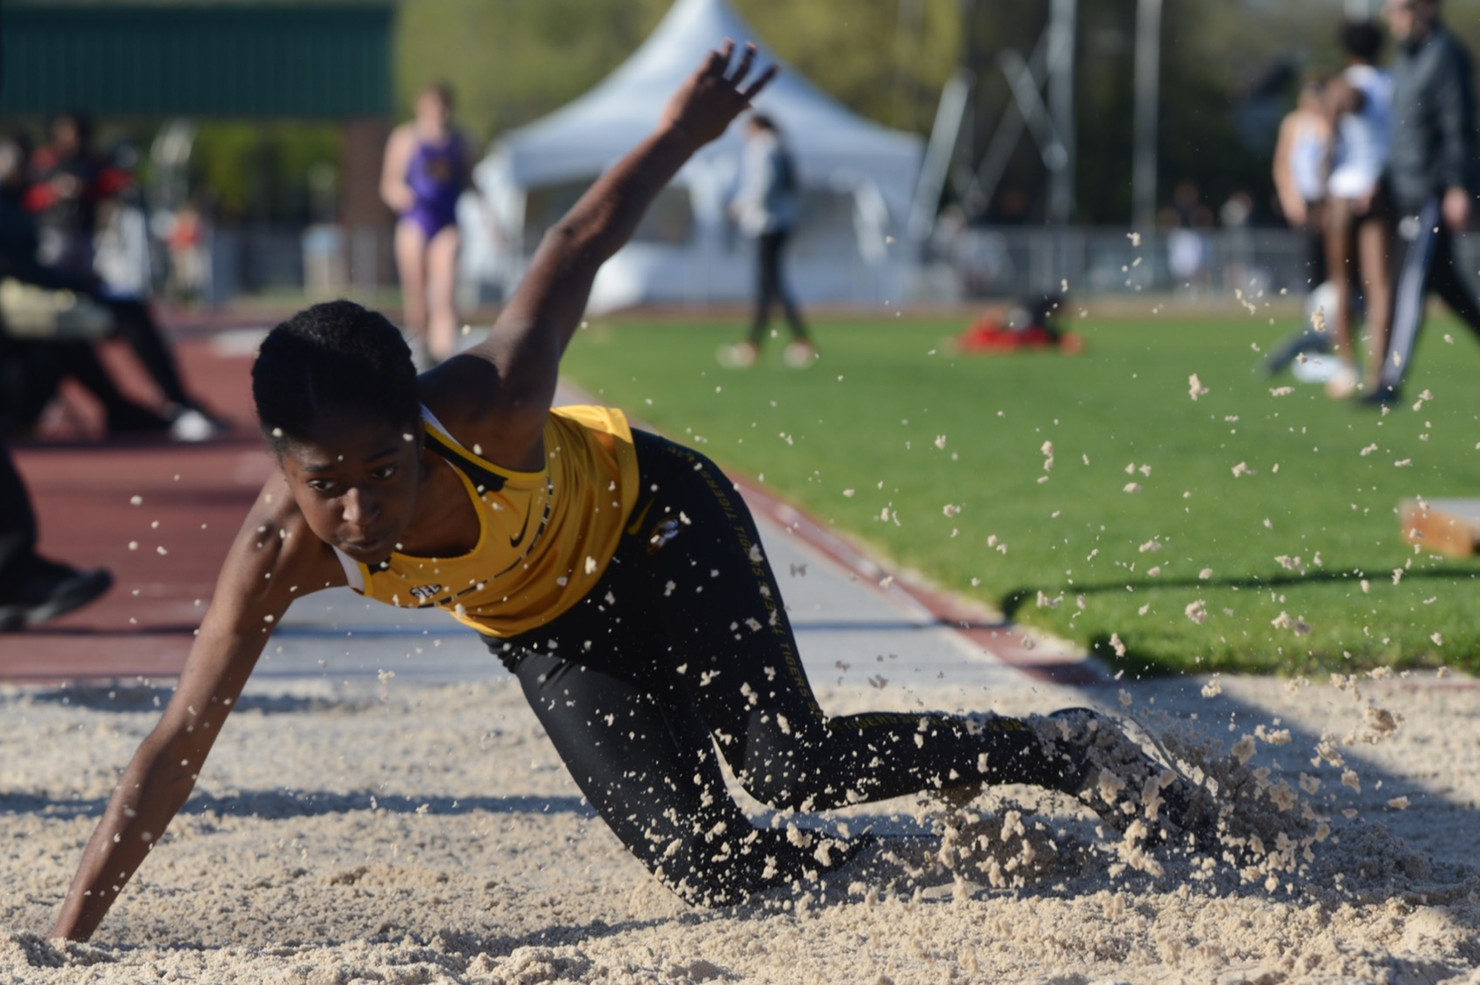 Sand flies through the air as Missouri's Kalescia Thomas lands in the pit during the long jump at the Tom Botts Invitational on Friday, April 20, 2019 at Andrey J. Walton Stadium, Columbia, Missouri. Missouri's men's and women's track and field teams hosted the first day of the Tom Botts Invitational on Friday at Audrey J. Walton Stadium. Missouri athletes participated in many events, including the hammer throw, long jump, javelin throw, 3,000-meter steeplechase, 1,500-meter run and 5,000-meter run.